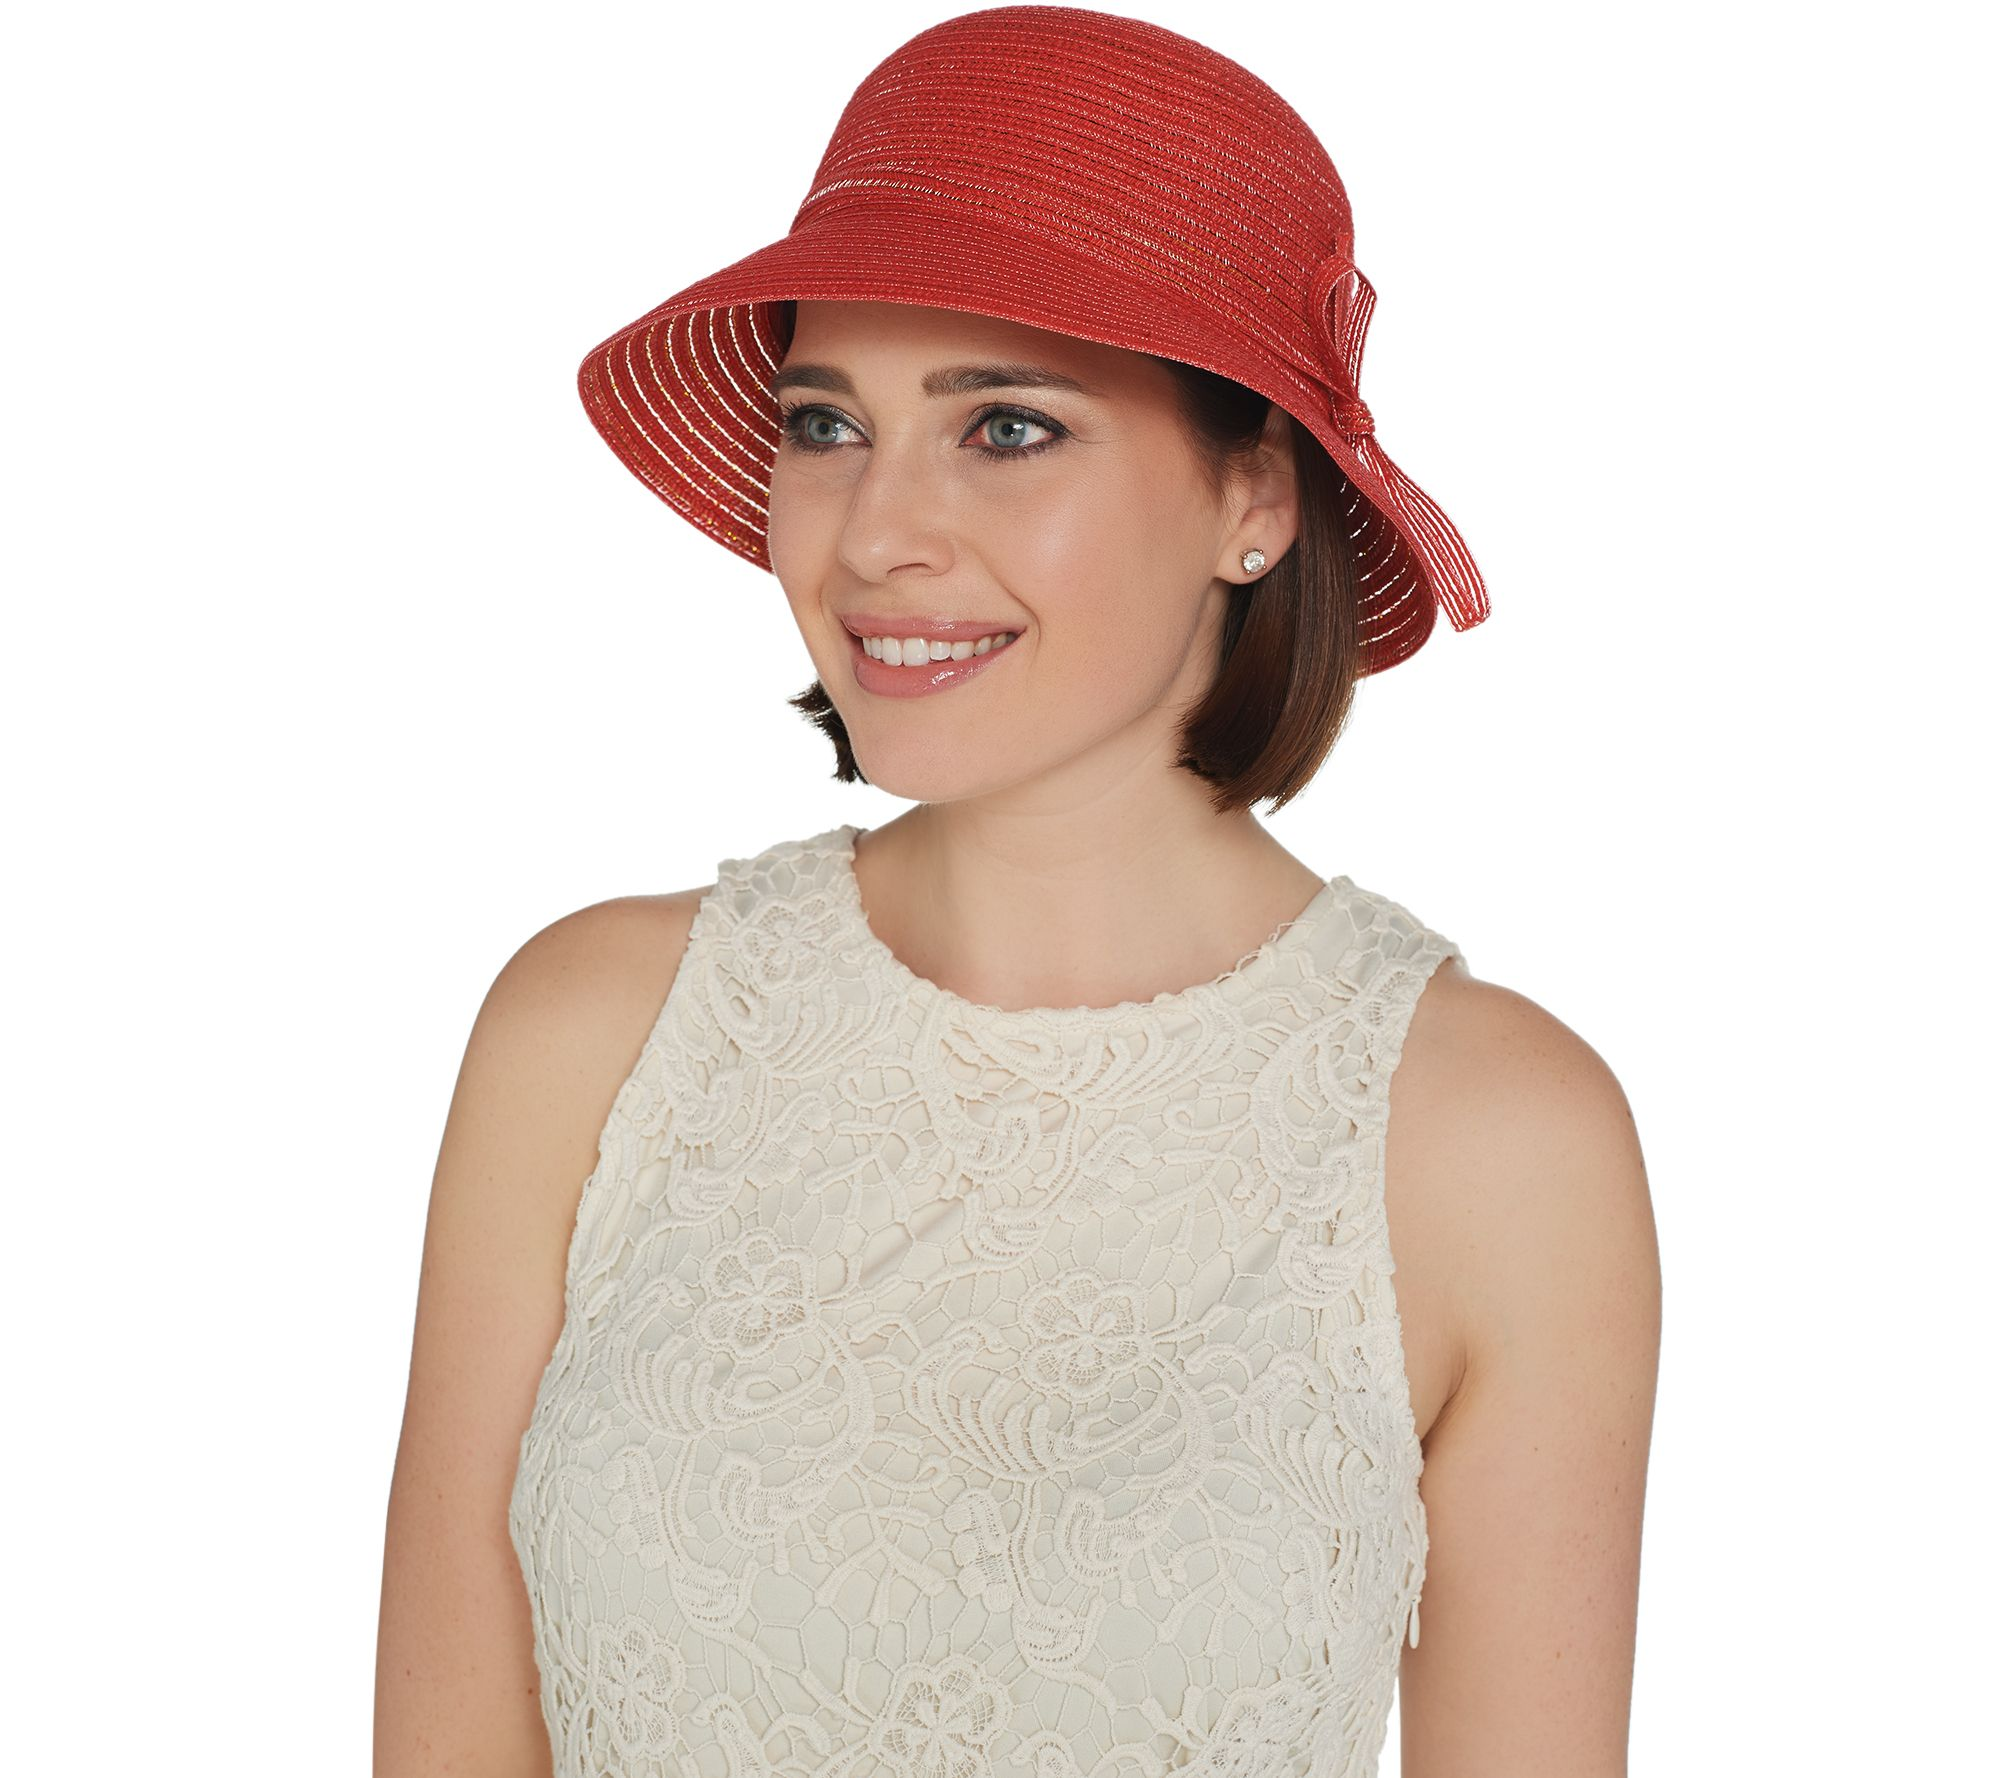 Physician Endorsed Adjustable Daisy Sunhat - Page 1 — QVC.com 06b1d1073d67